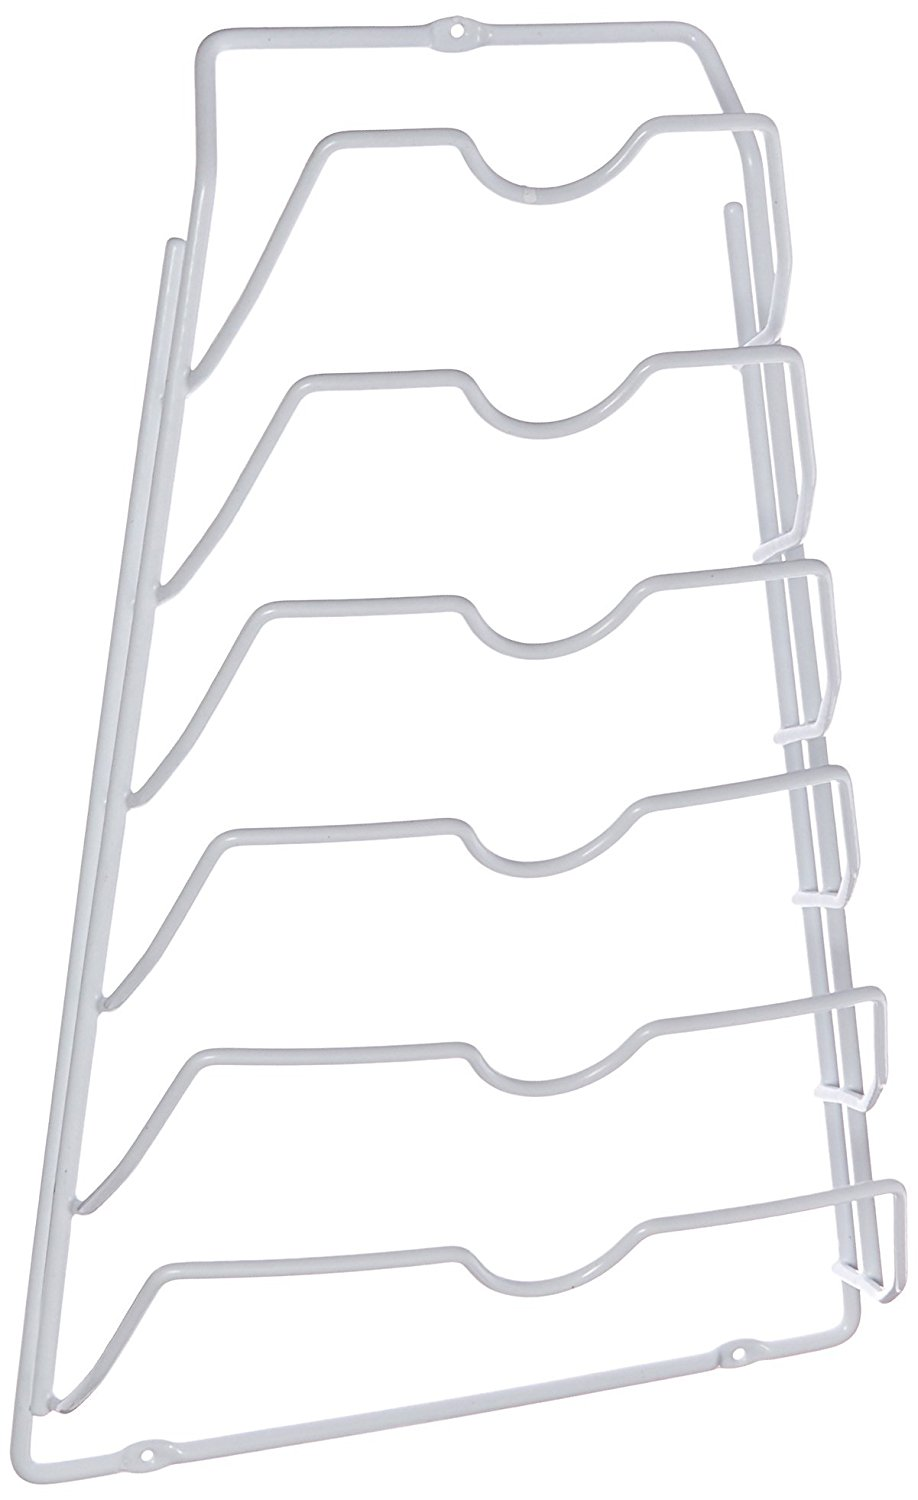 Organize It All Wall Cabinet Door Mounted Metal Pot Lid Rack, White